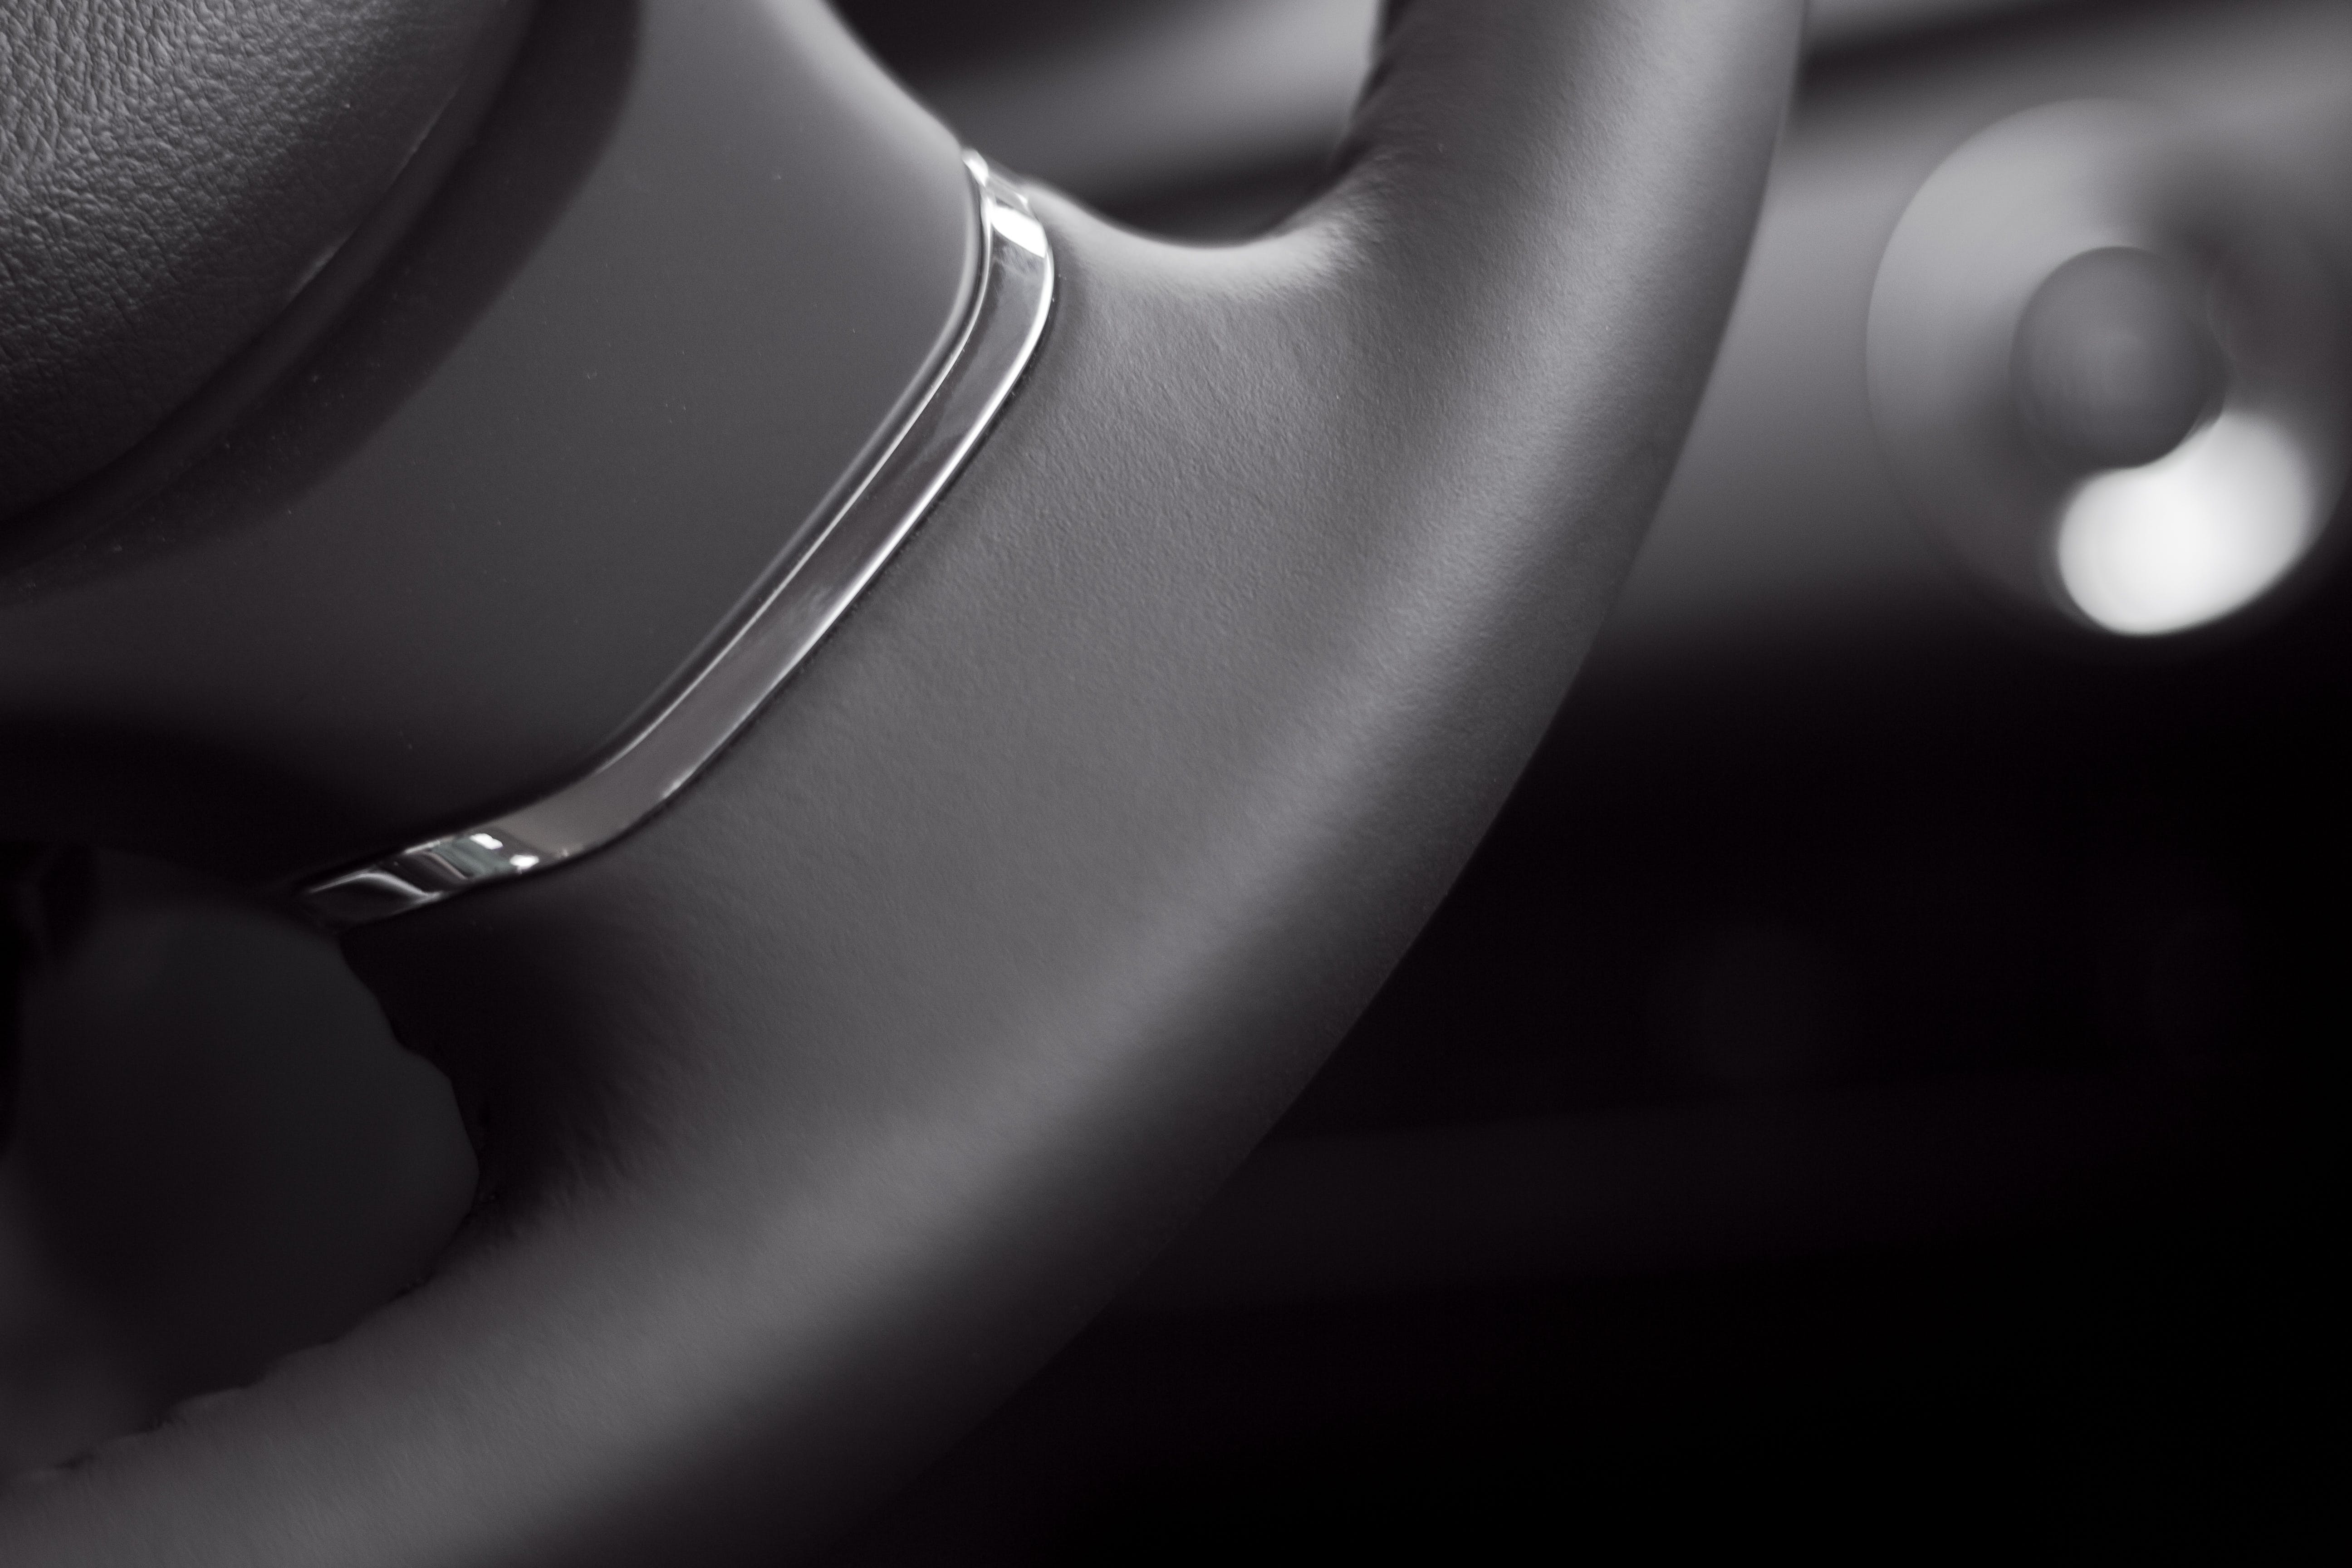 Free stock photo of #canon #black #steering #craftsman #suzuki #art